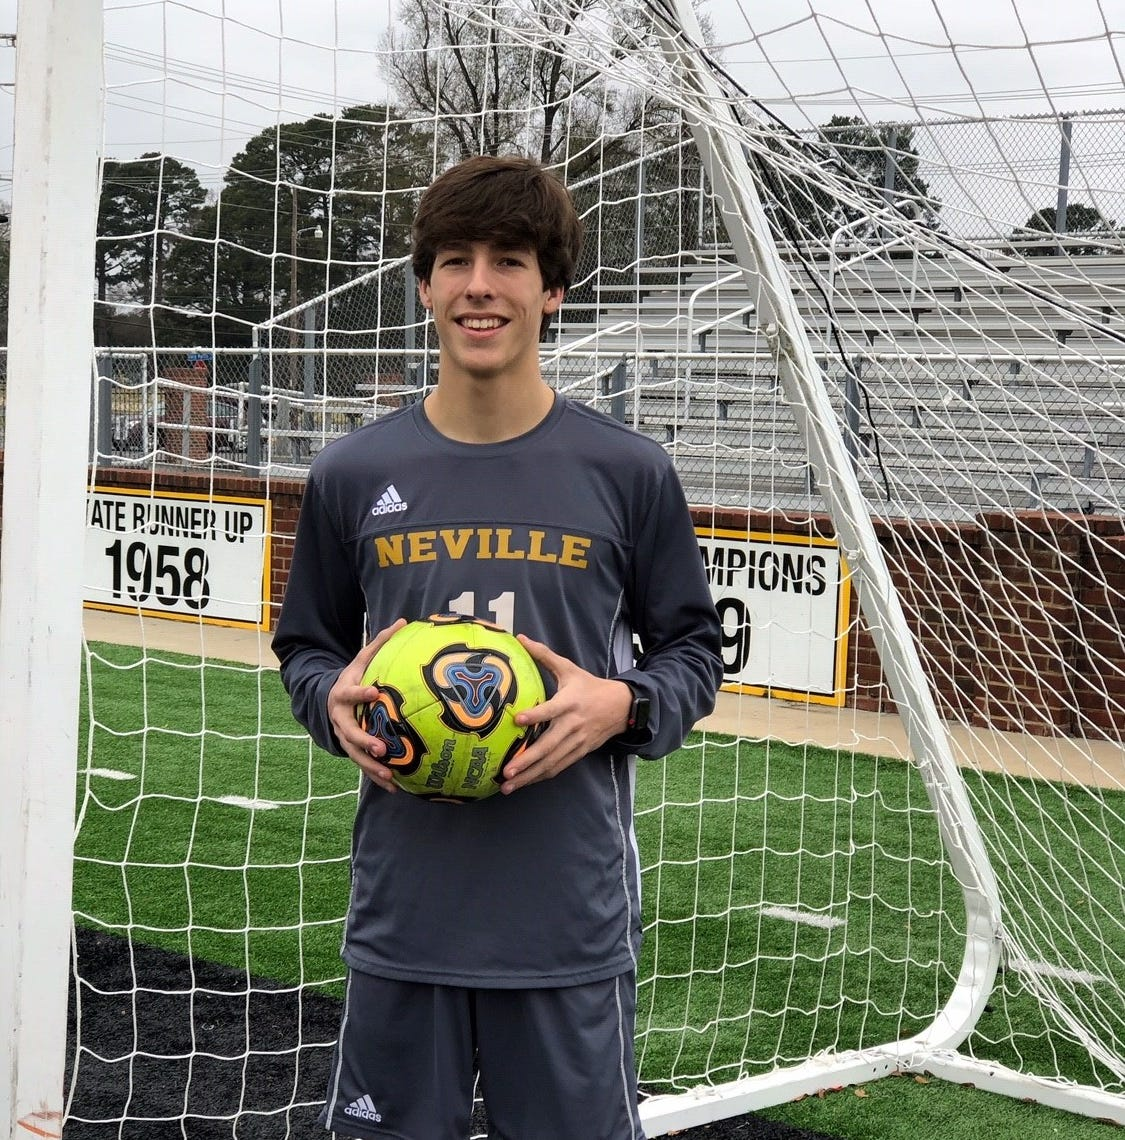 Neville boys soccer player Cameron King